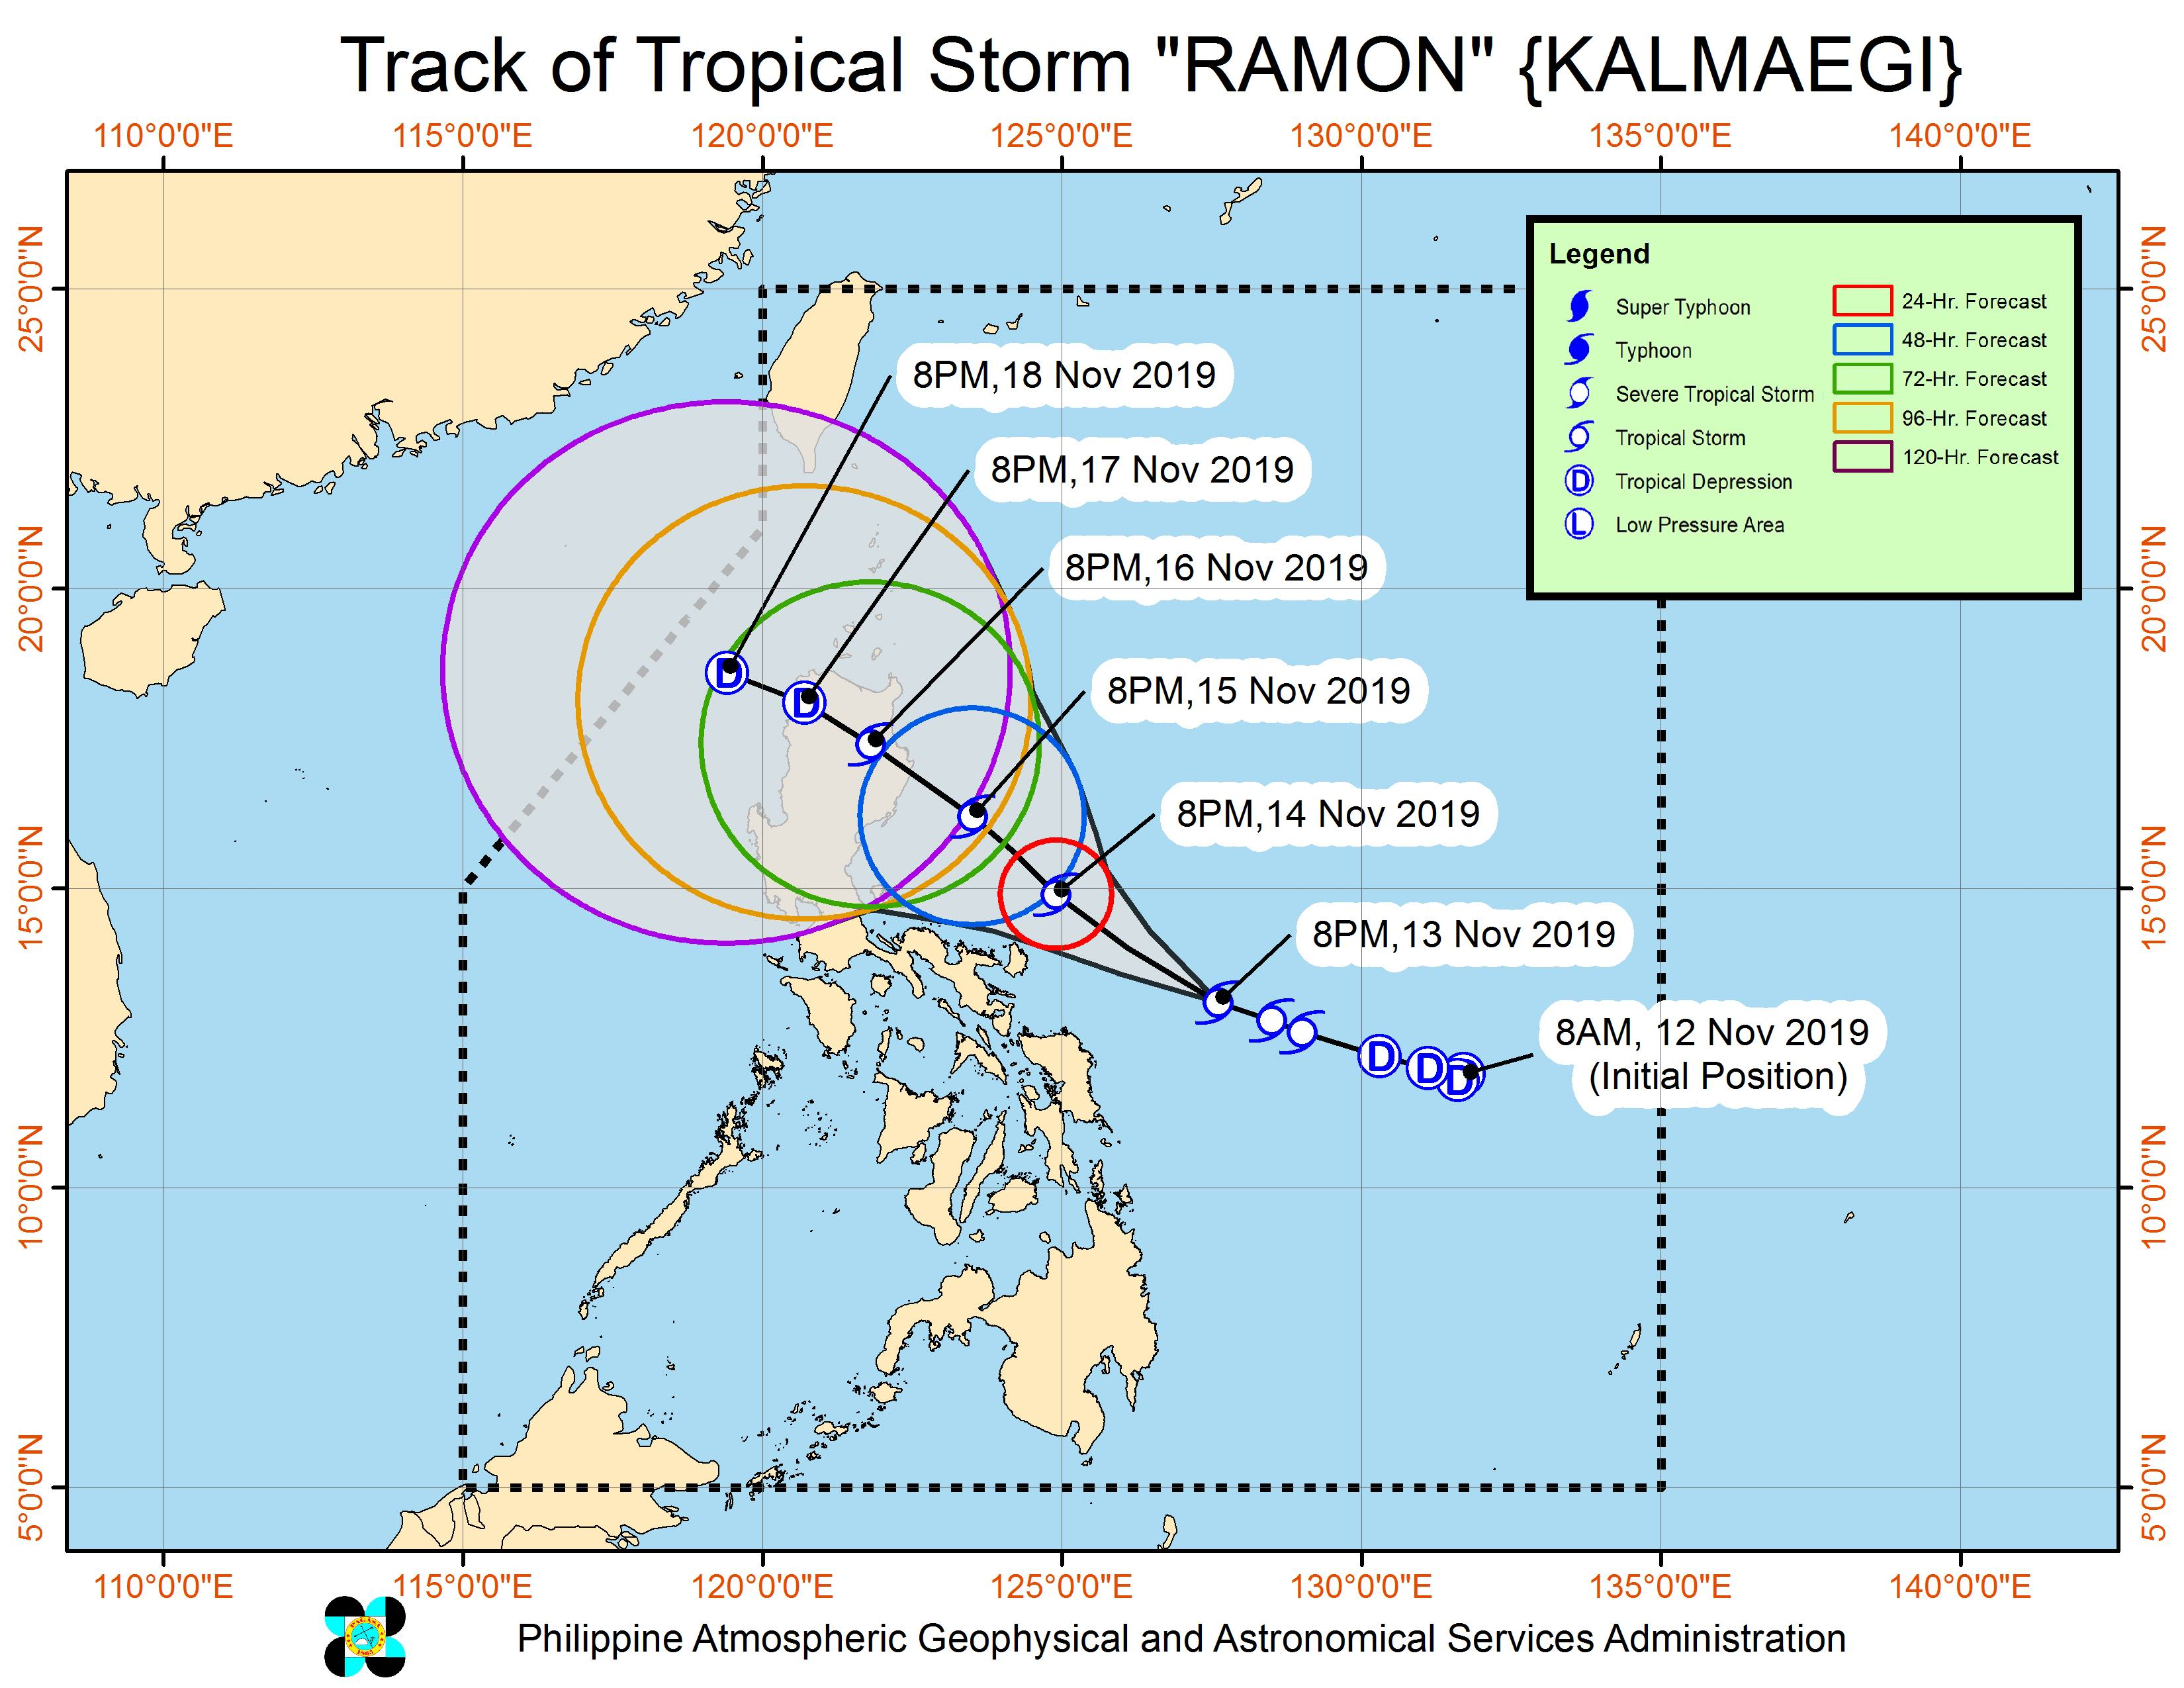 Forecast track of Tropical Storm Ramon (Kalmaegi) as of November 13, 2019, 11 pm. Image from PAGASA